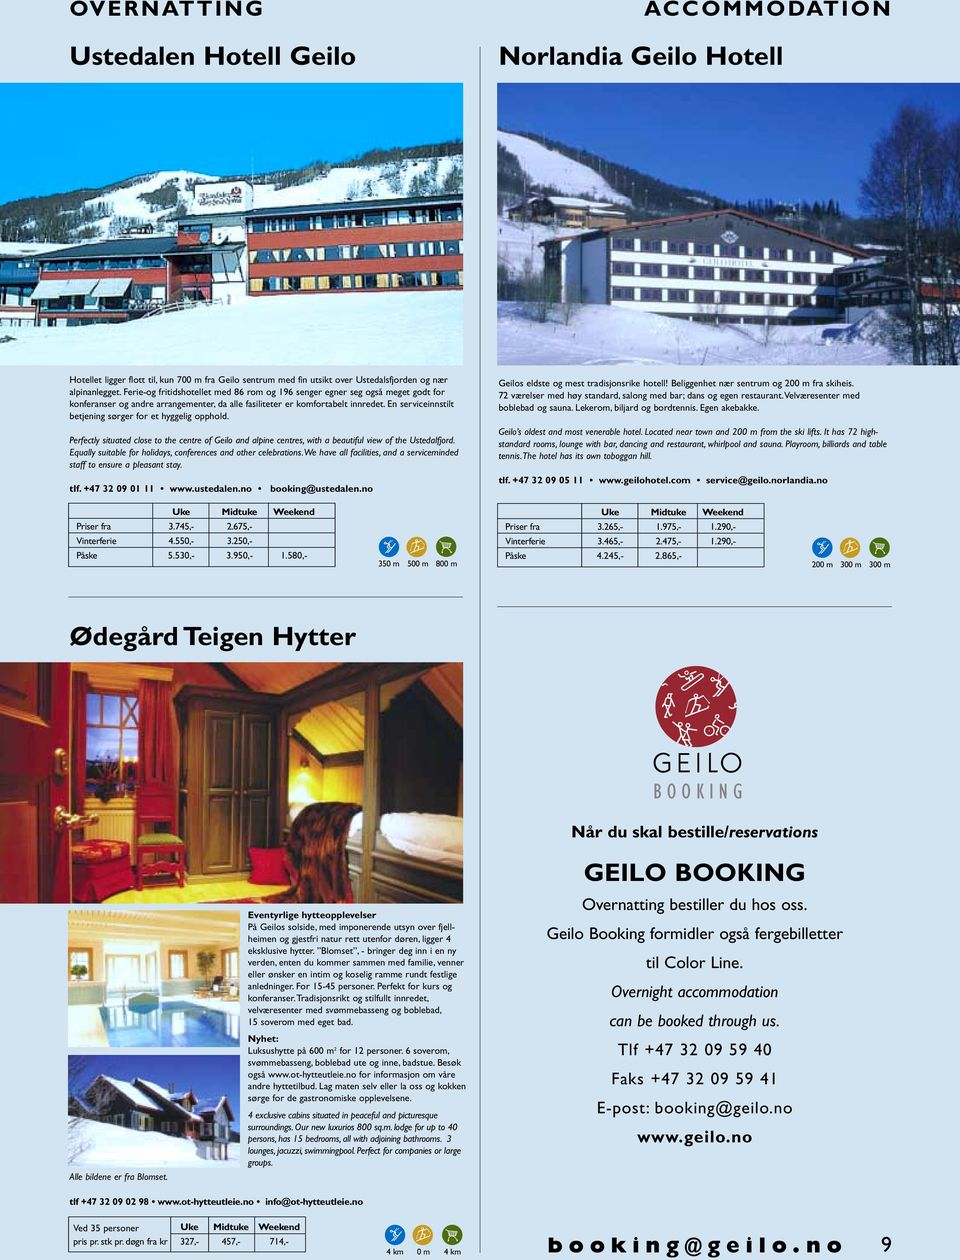 En serviceinnstilt betjening sørger for et hyggelig opphold. Perfectly situated close to the centre of Geilo and alpine centres, with a beautiful view of the Ustedalfjord.